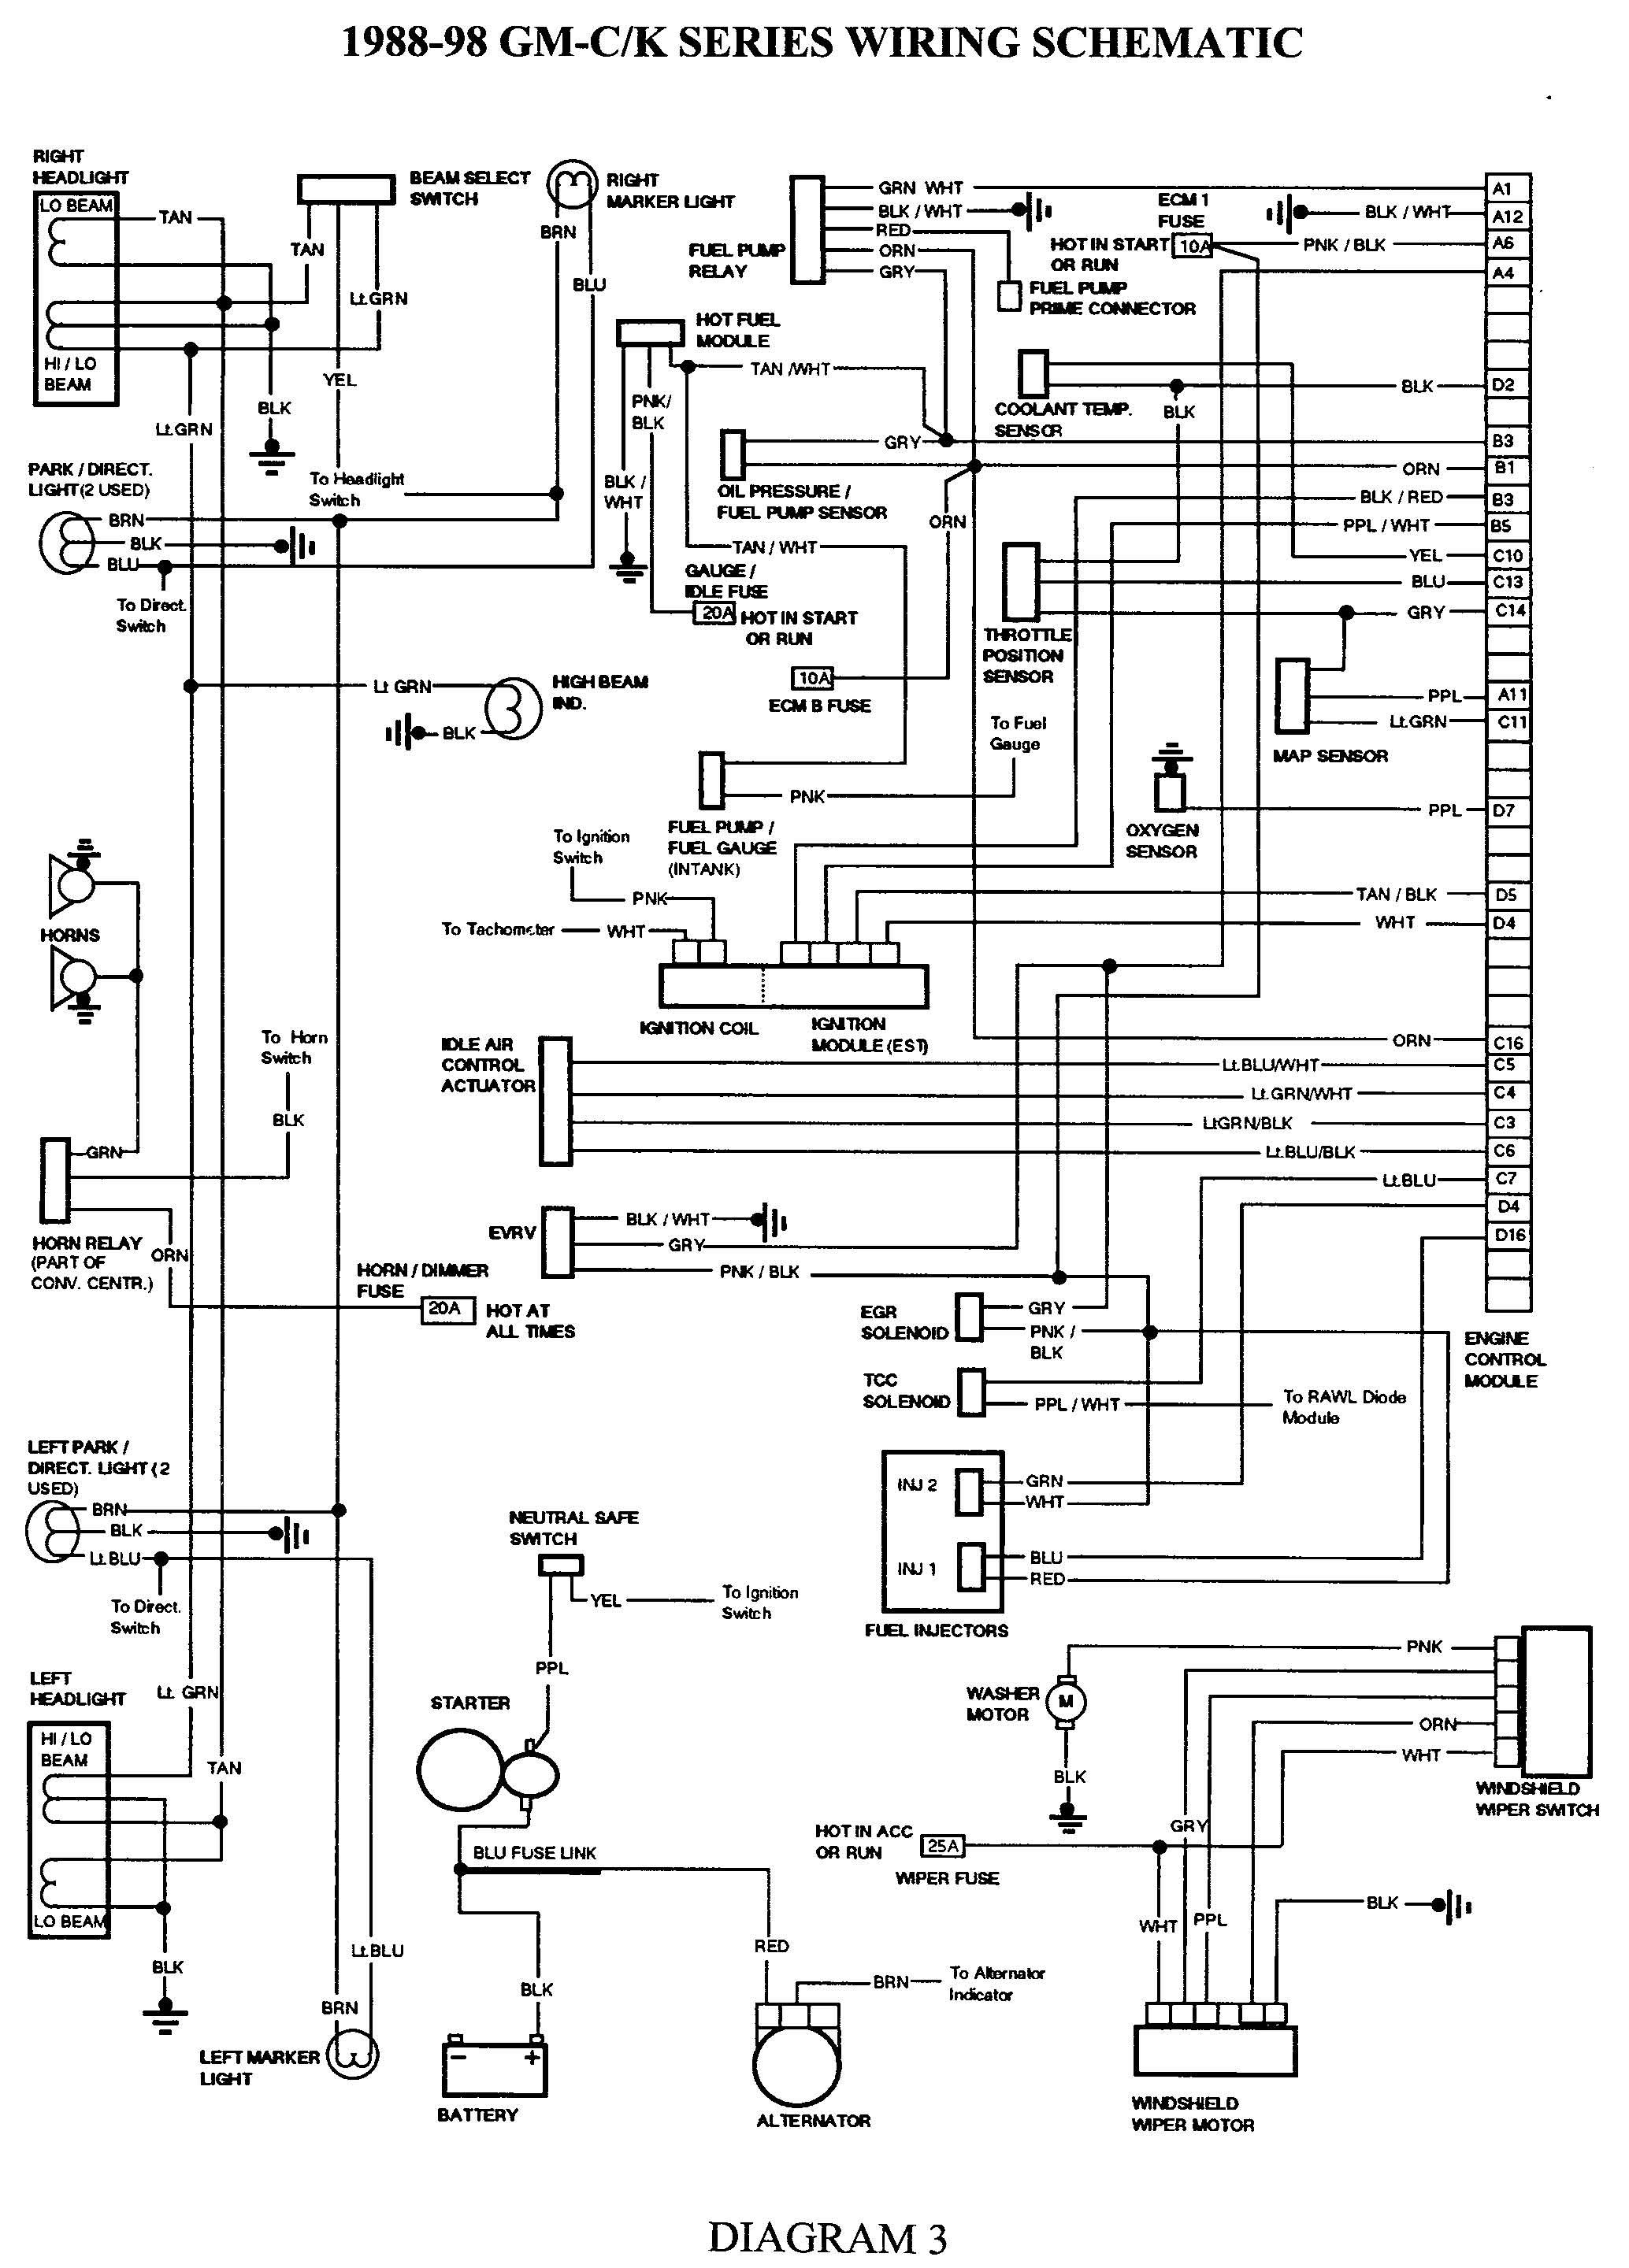 GMC Truck Wiring Diagrams on Gm Wiring Harness Diagram 88